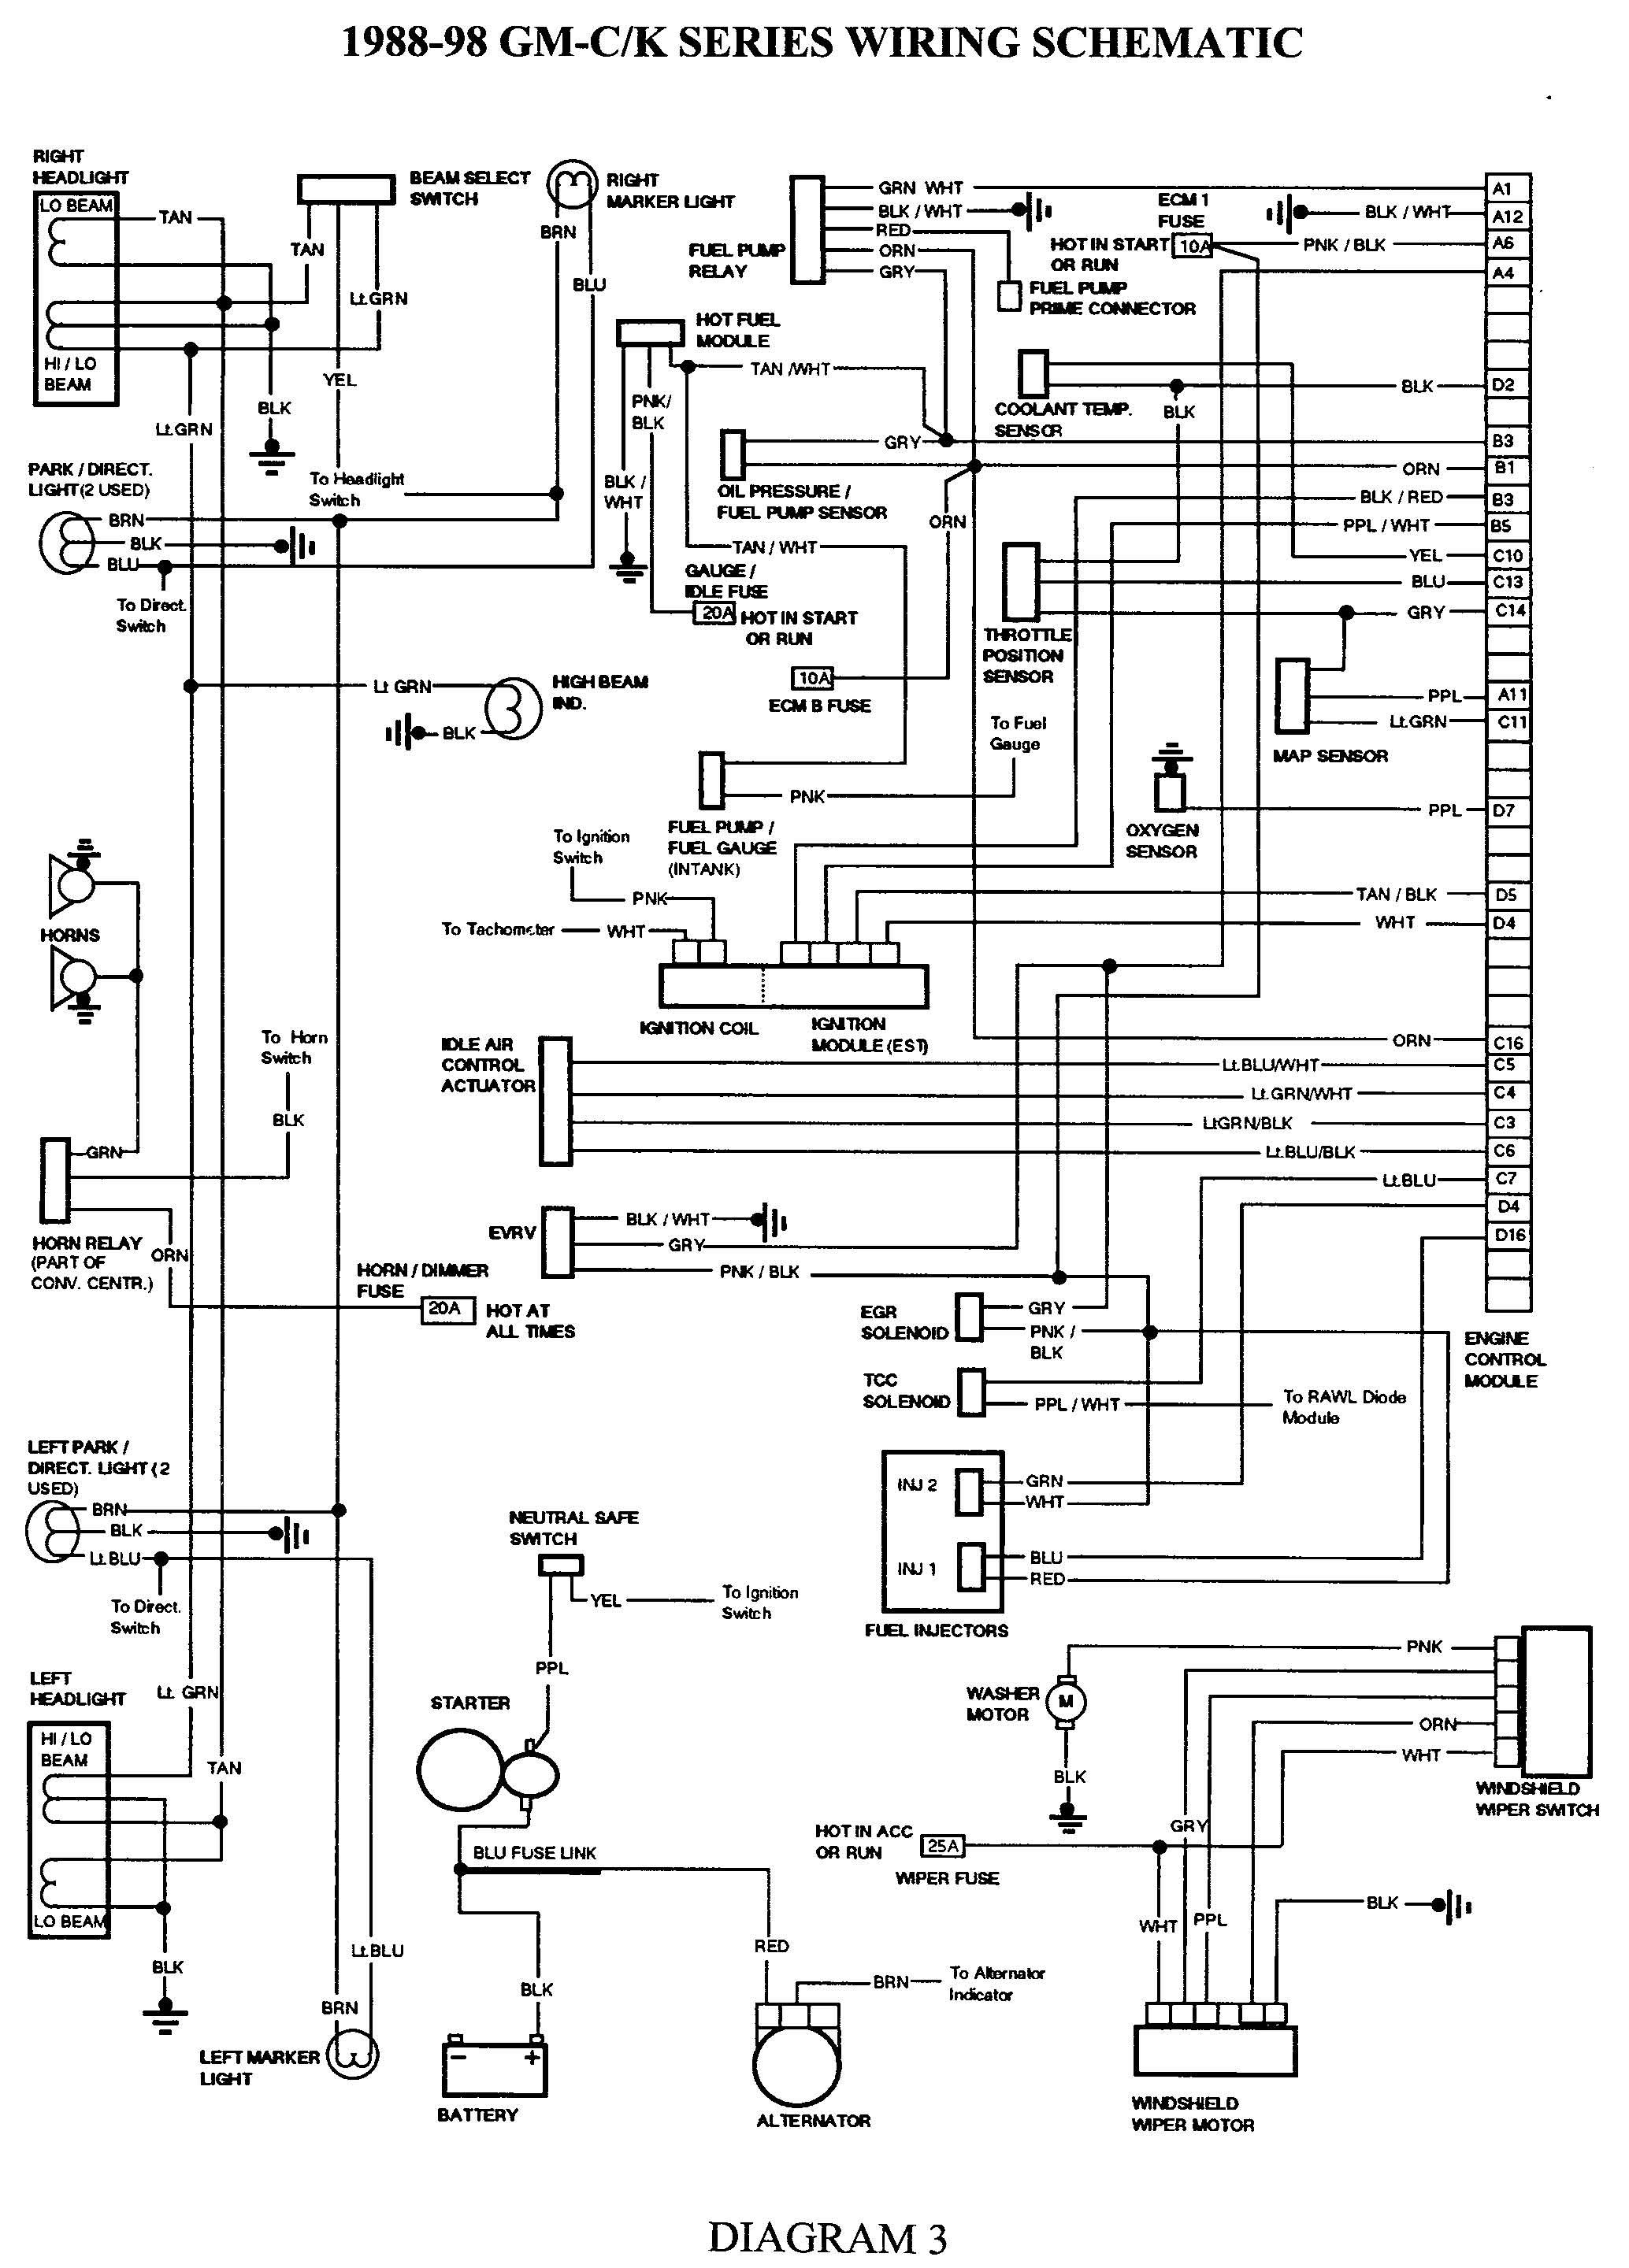 GMC Truck Wiring Diagrams on Gm Wiring Harness Diagram 88